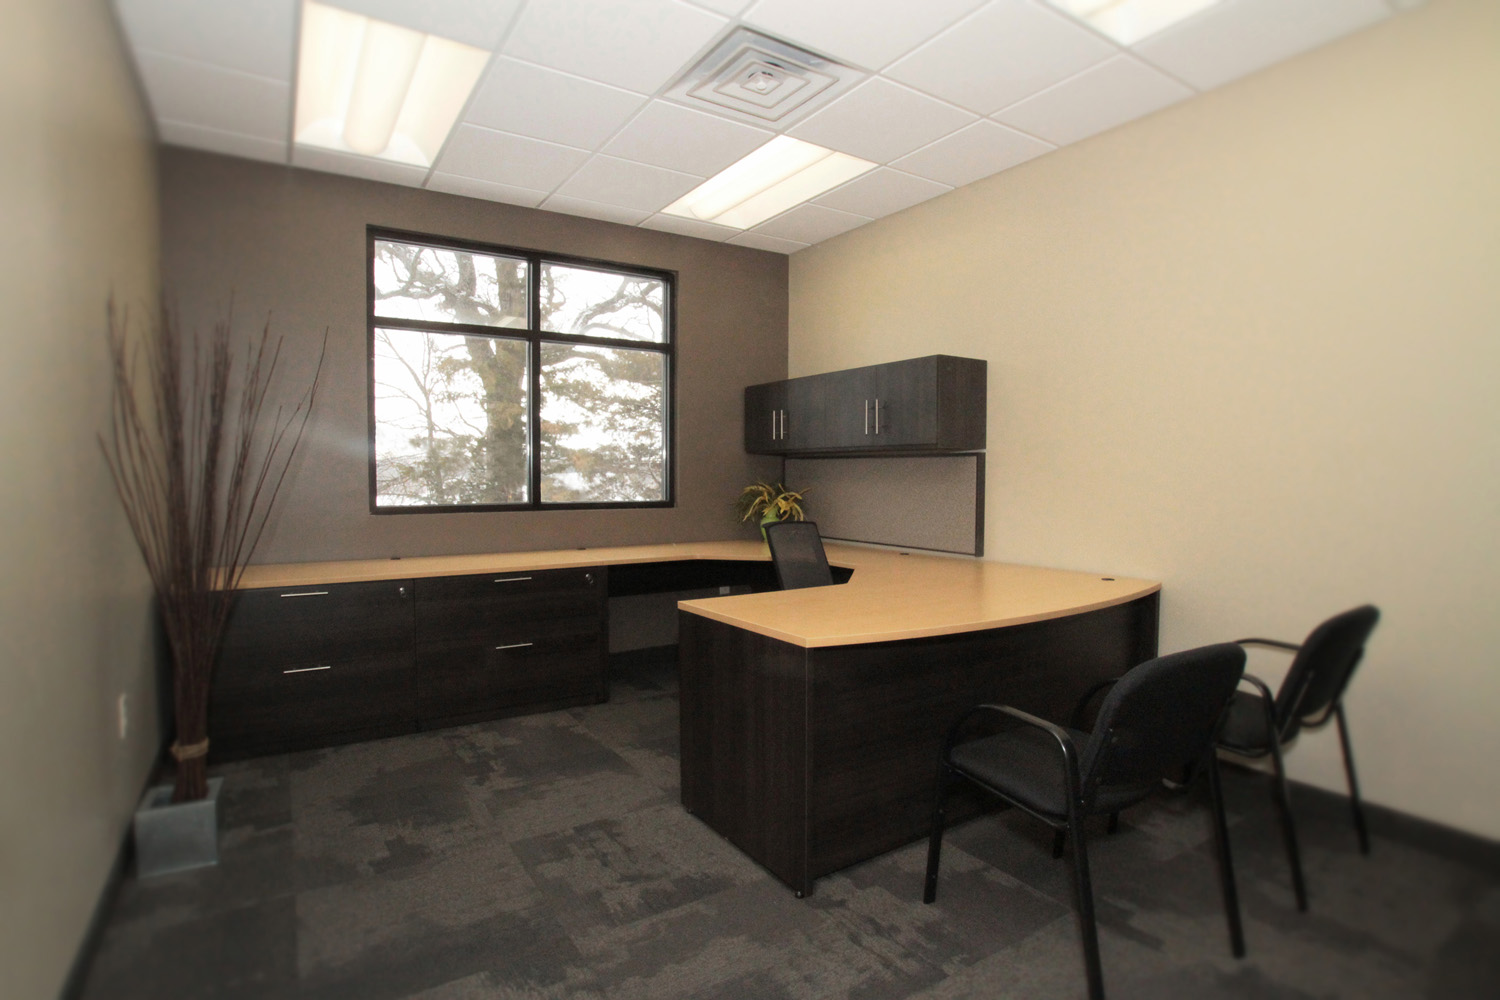 Office space design mankato new used office furnishings mankato - Design home office space easily ...